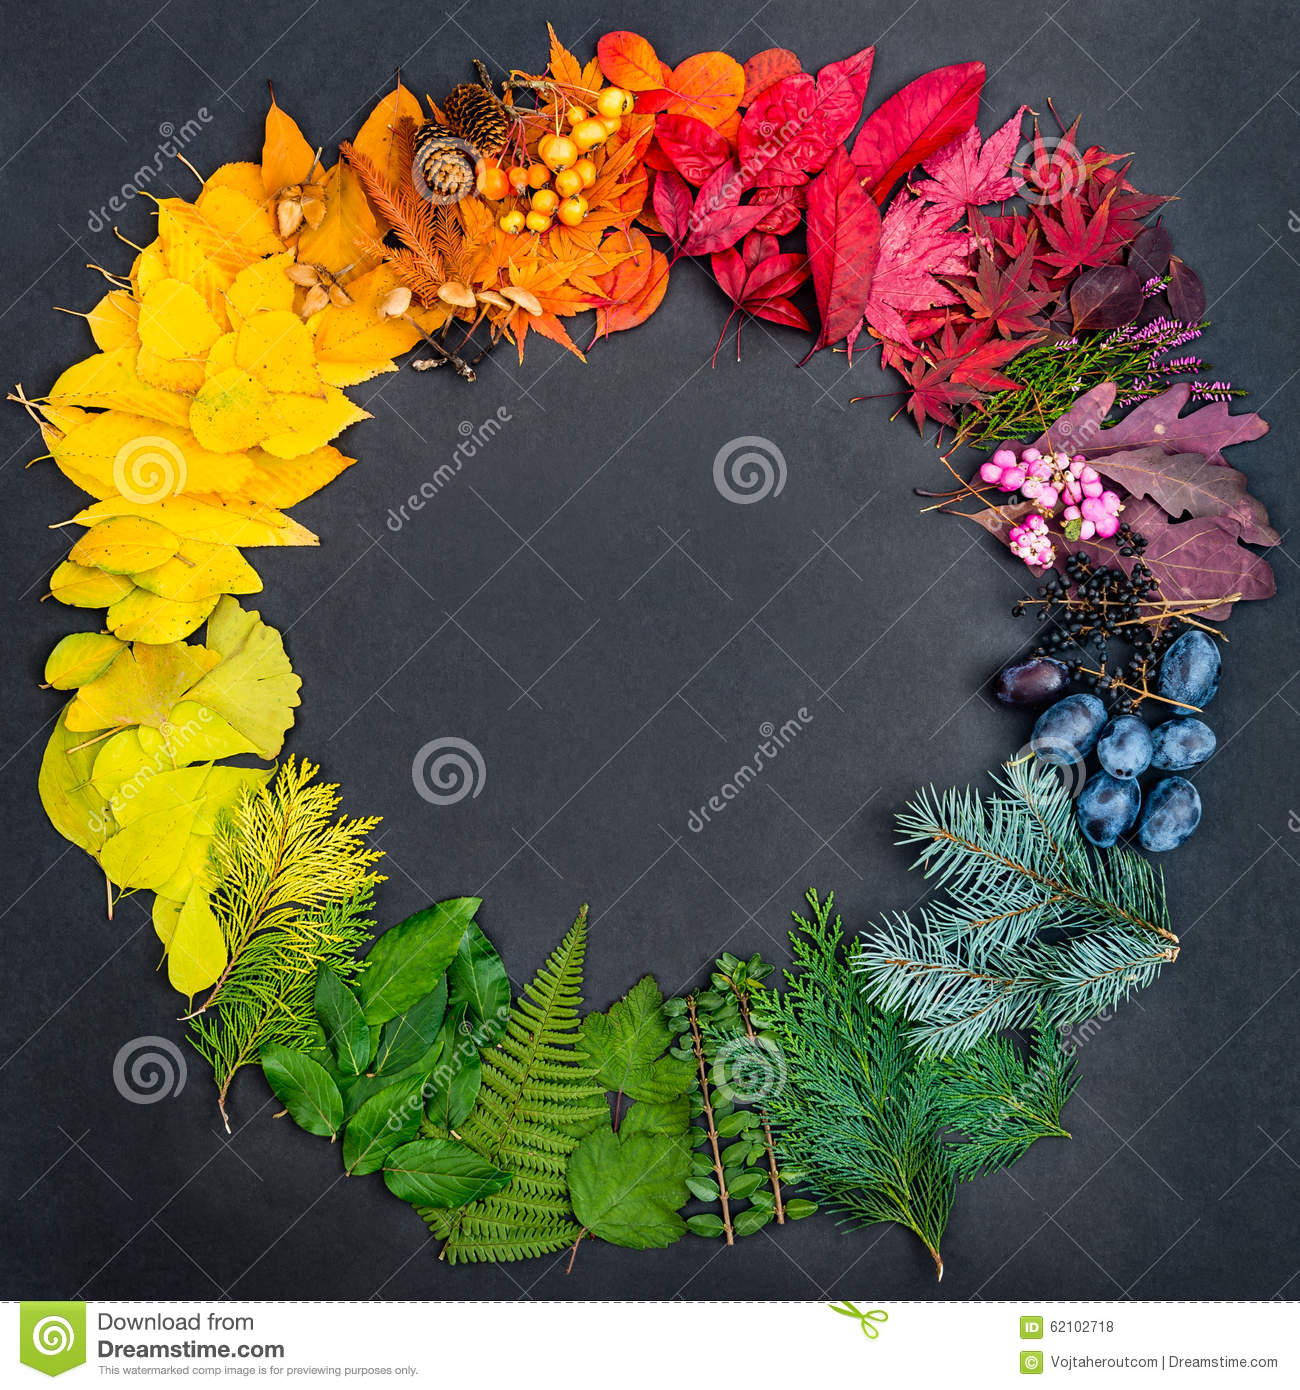 essay on colours of nature